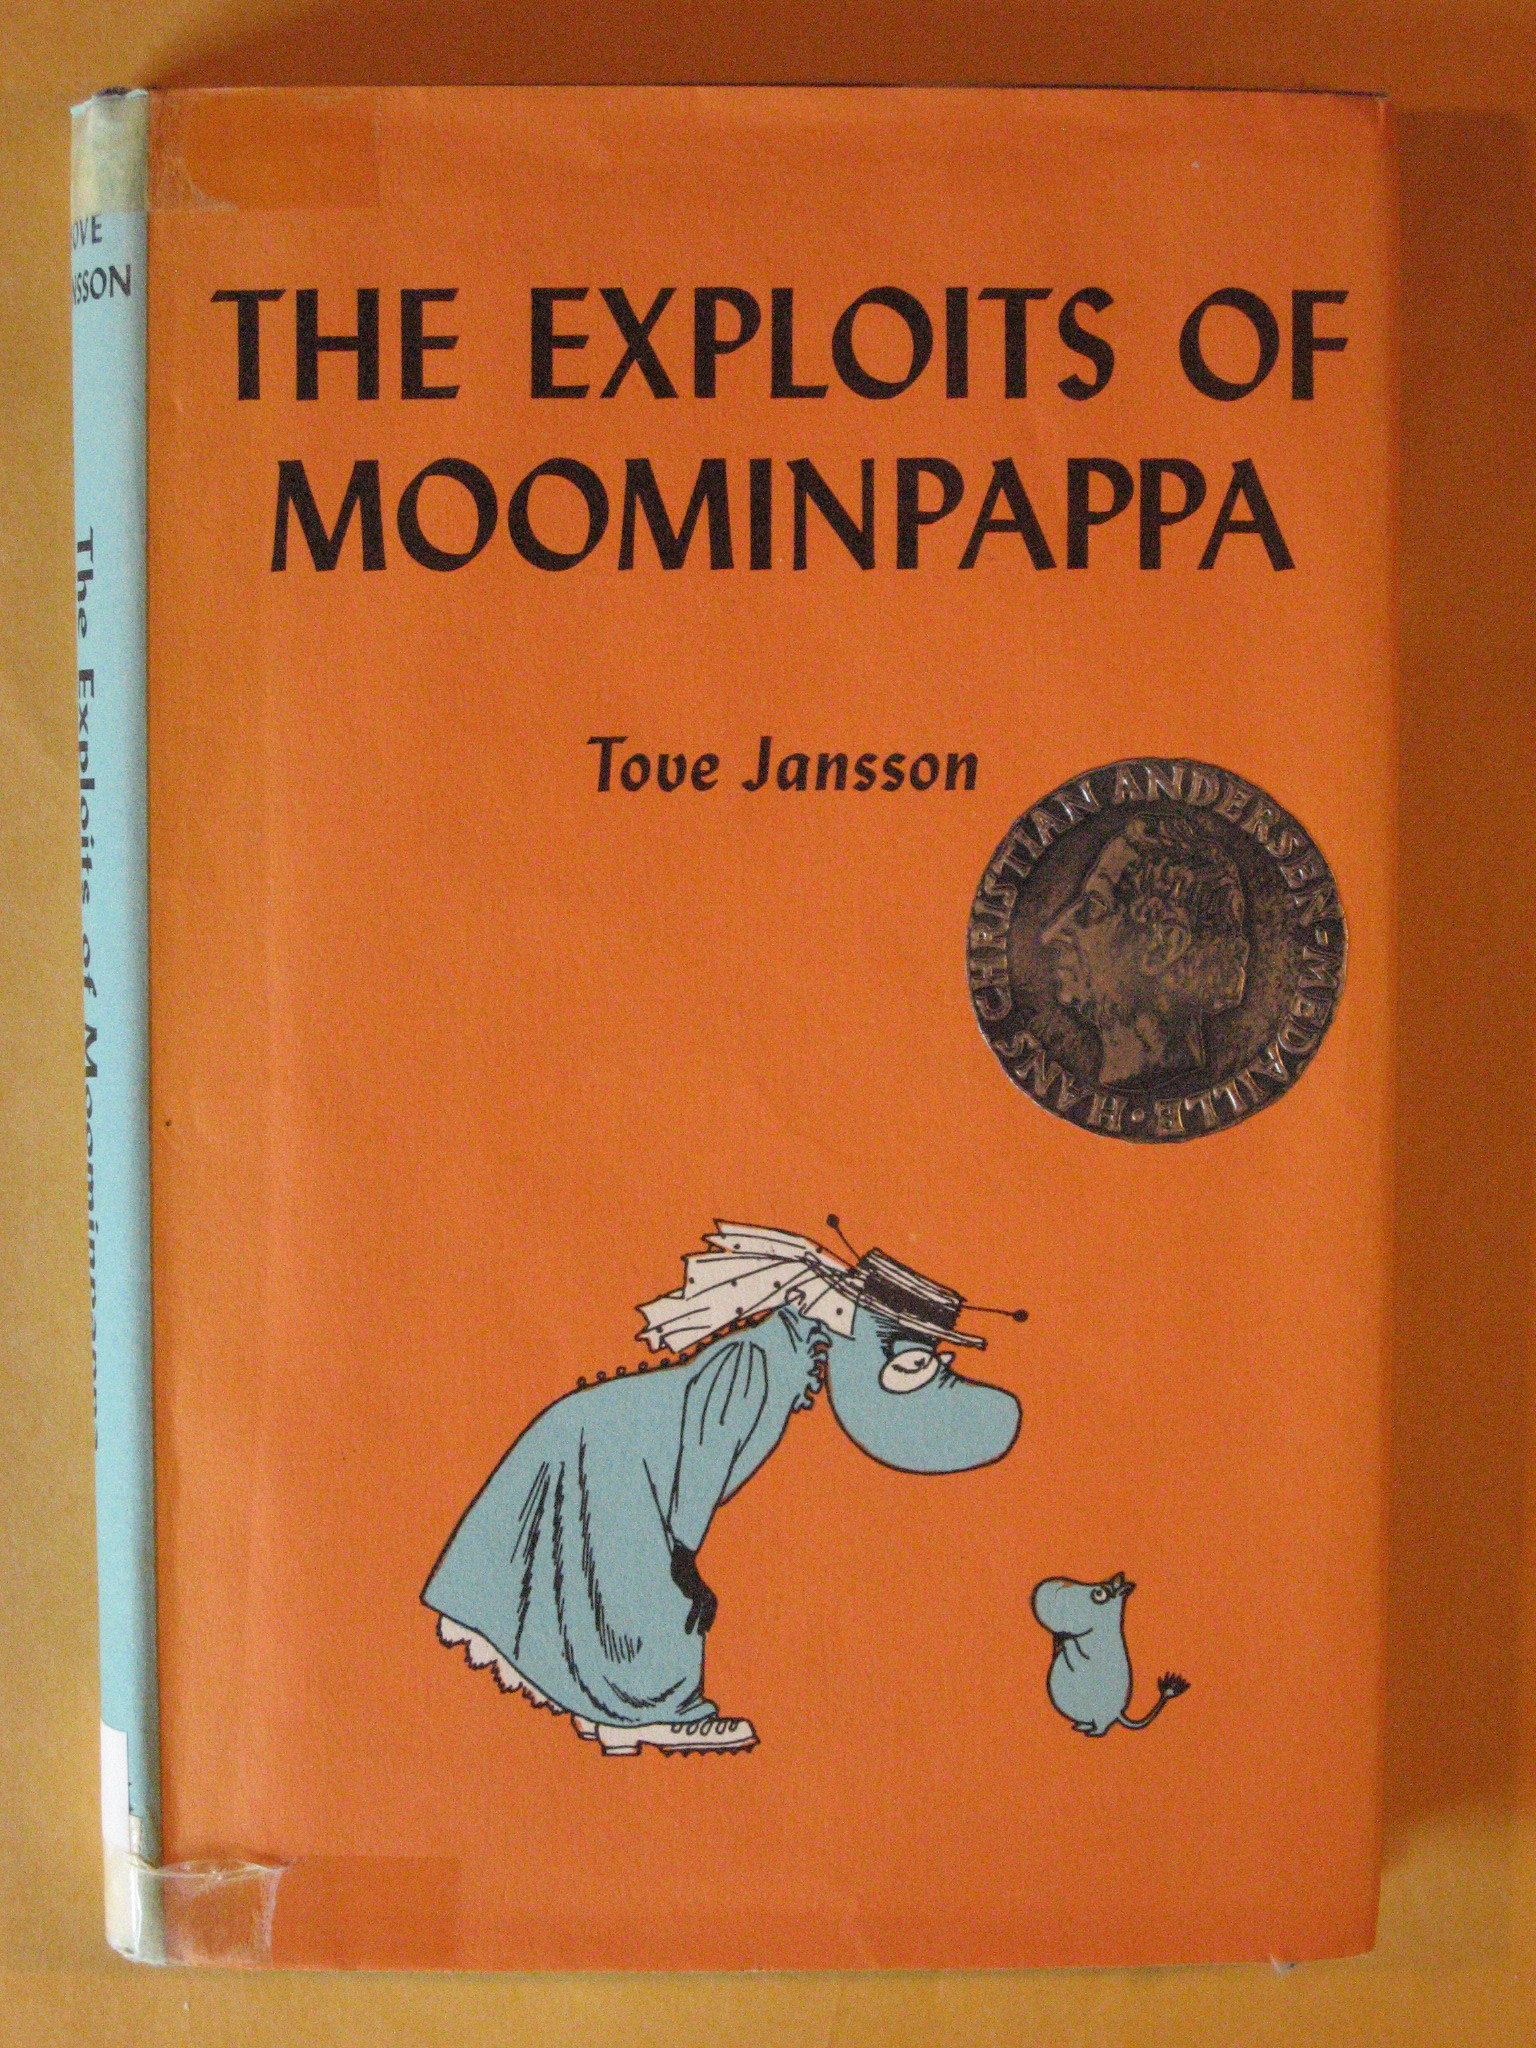 The Exploits of Moominpappa, Jansson, Tove